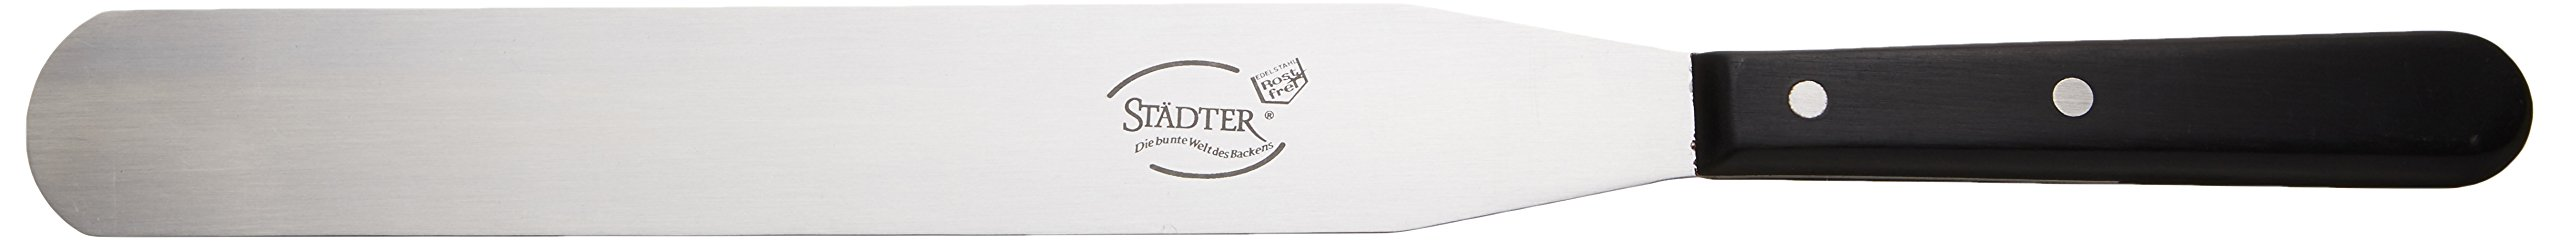 Staedter Icing Spatula, Silver, 25 Cm Length X 3.5 Cm Width